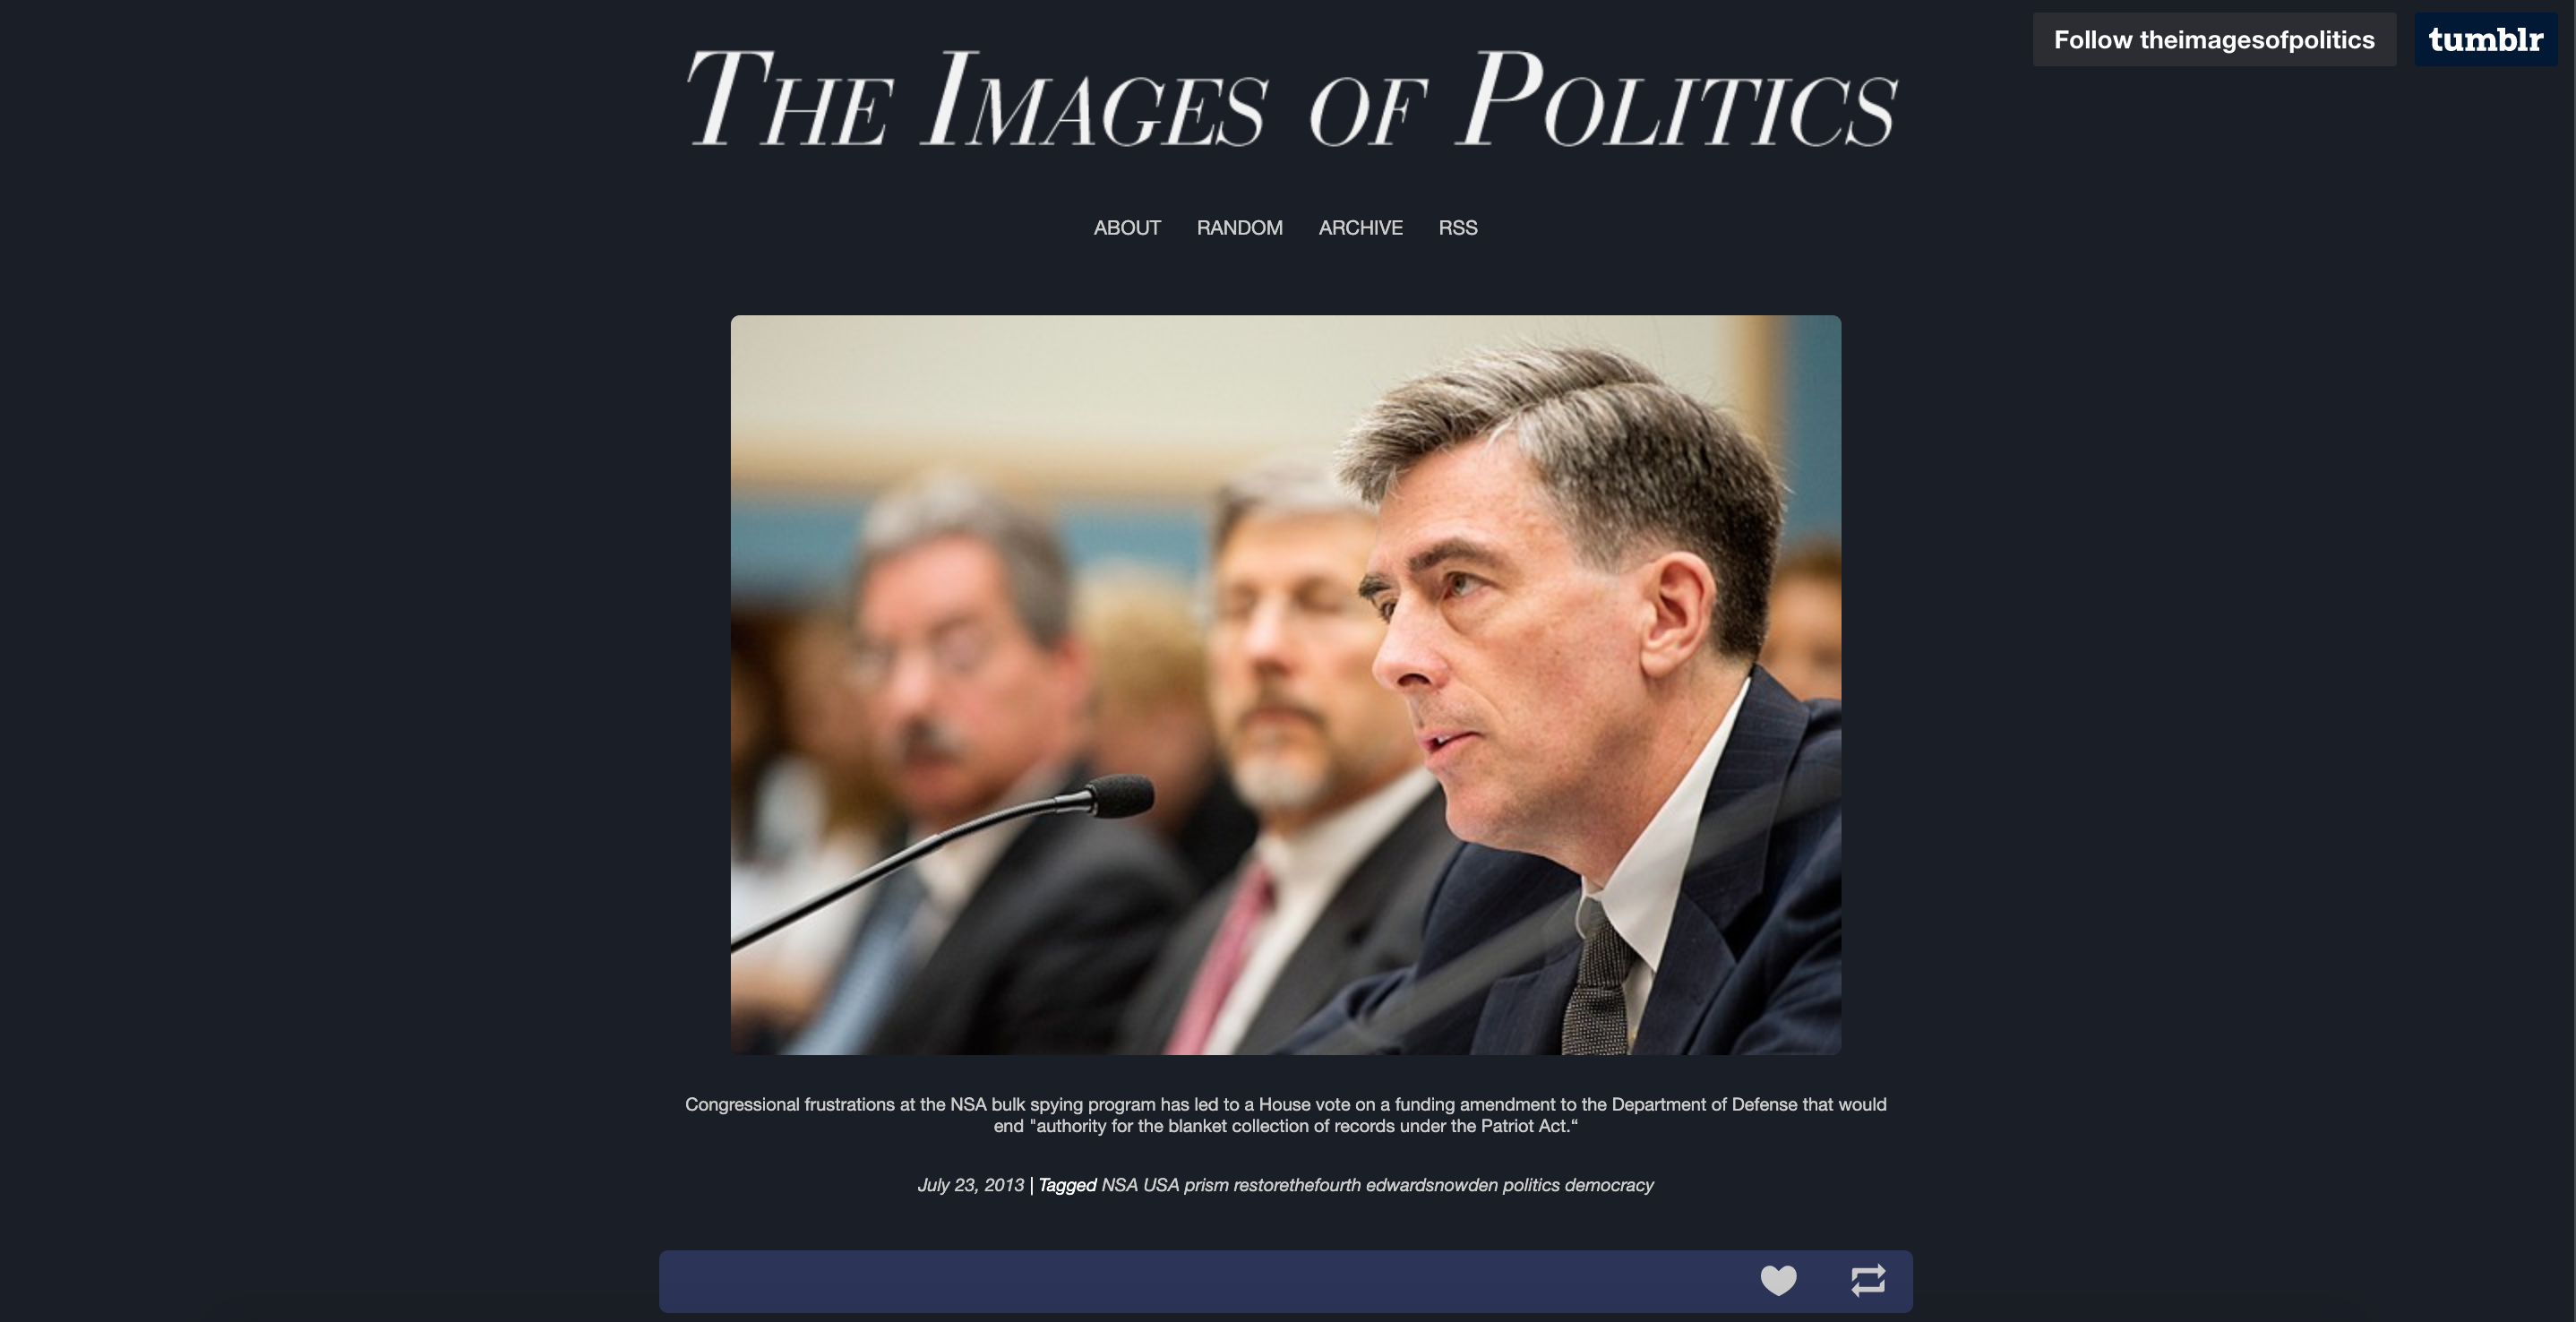 the images of politics page 2